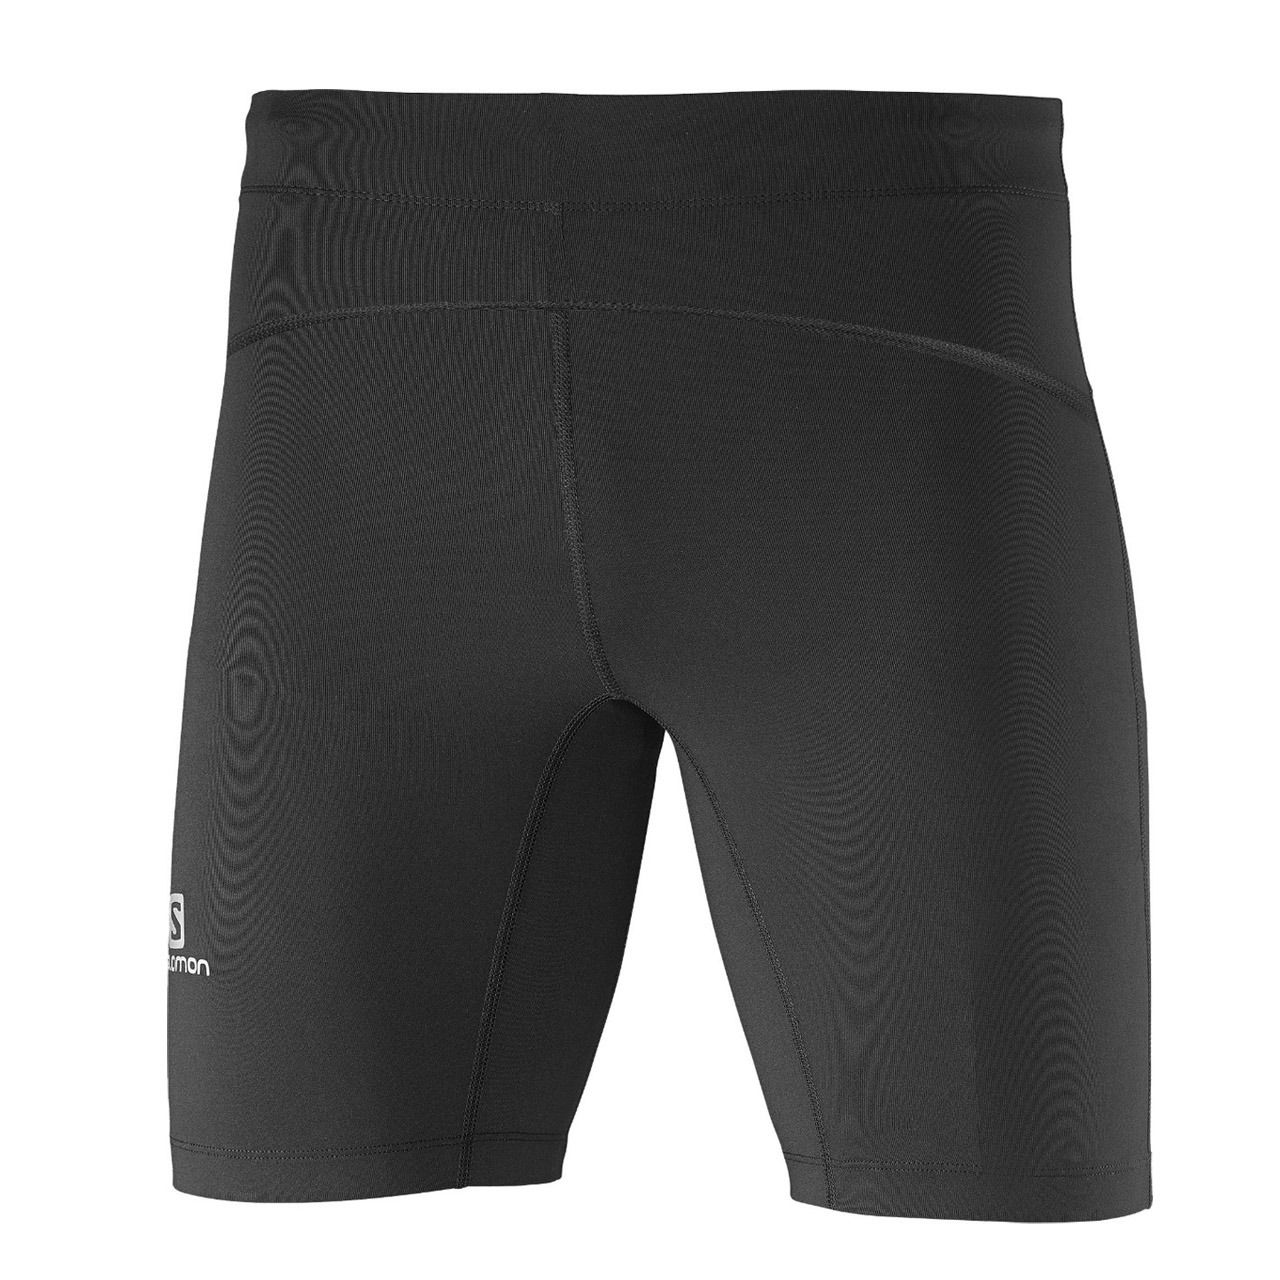 SHORT de  Compressão salomon SENSE TIGHT III M